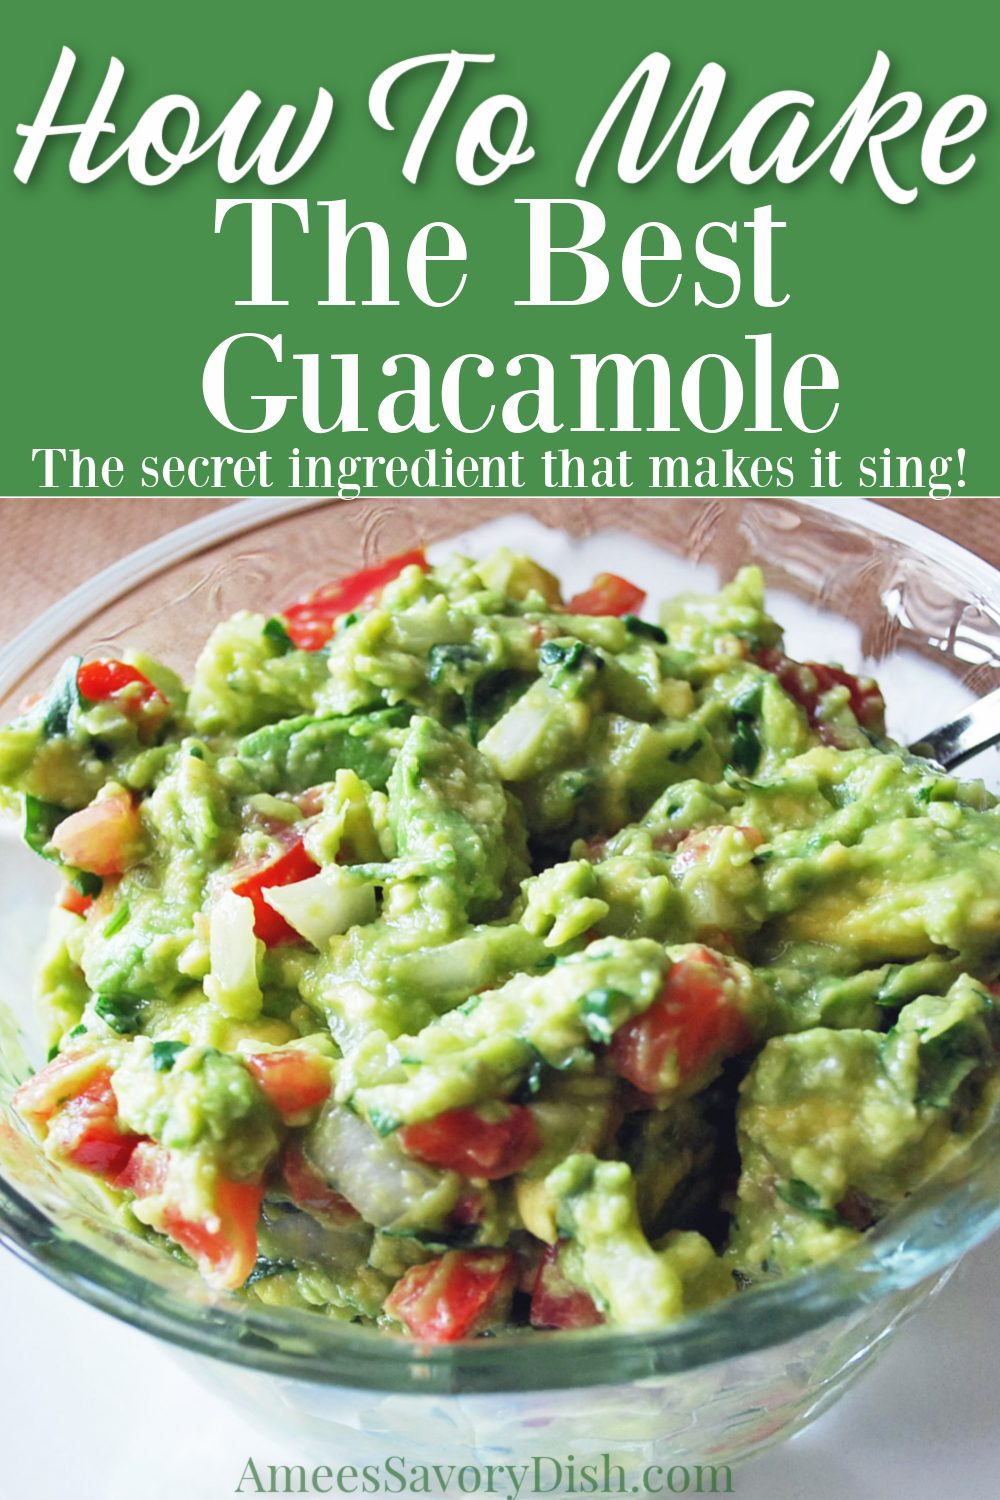 This homemade guacamole dip recipe is made from ripe avocados, tomatoes, onion, fresh cilantro, lime juice... and a secret ingredient that makes it sing! #guacamole #guacamolerecipe via @Ameessavorydish